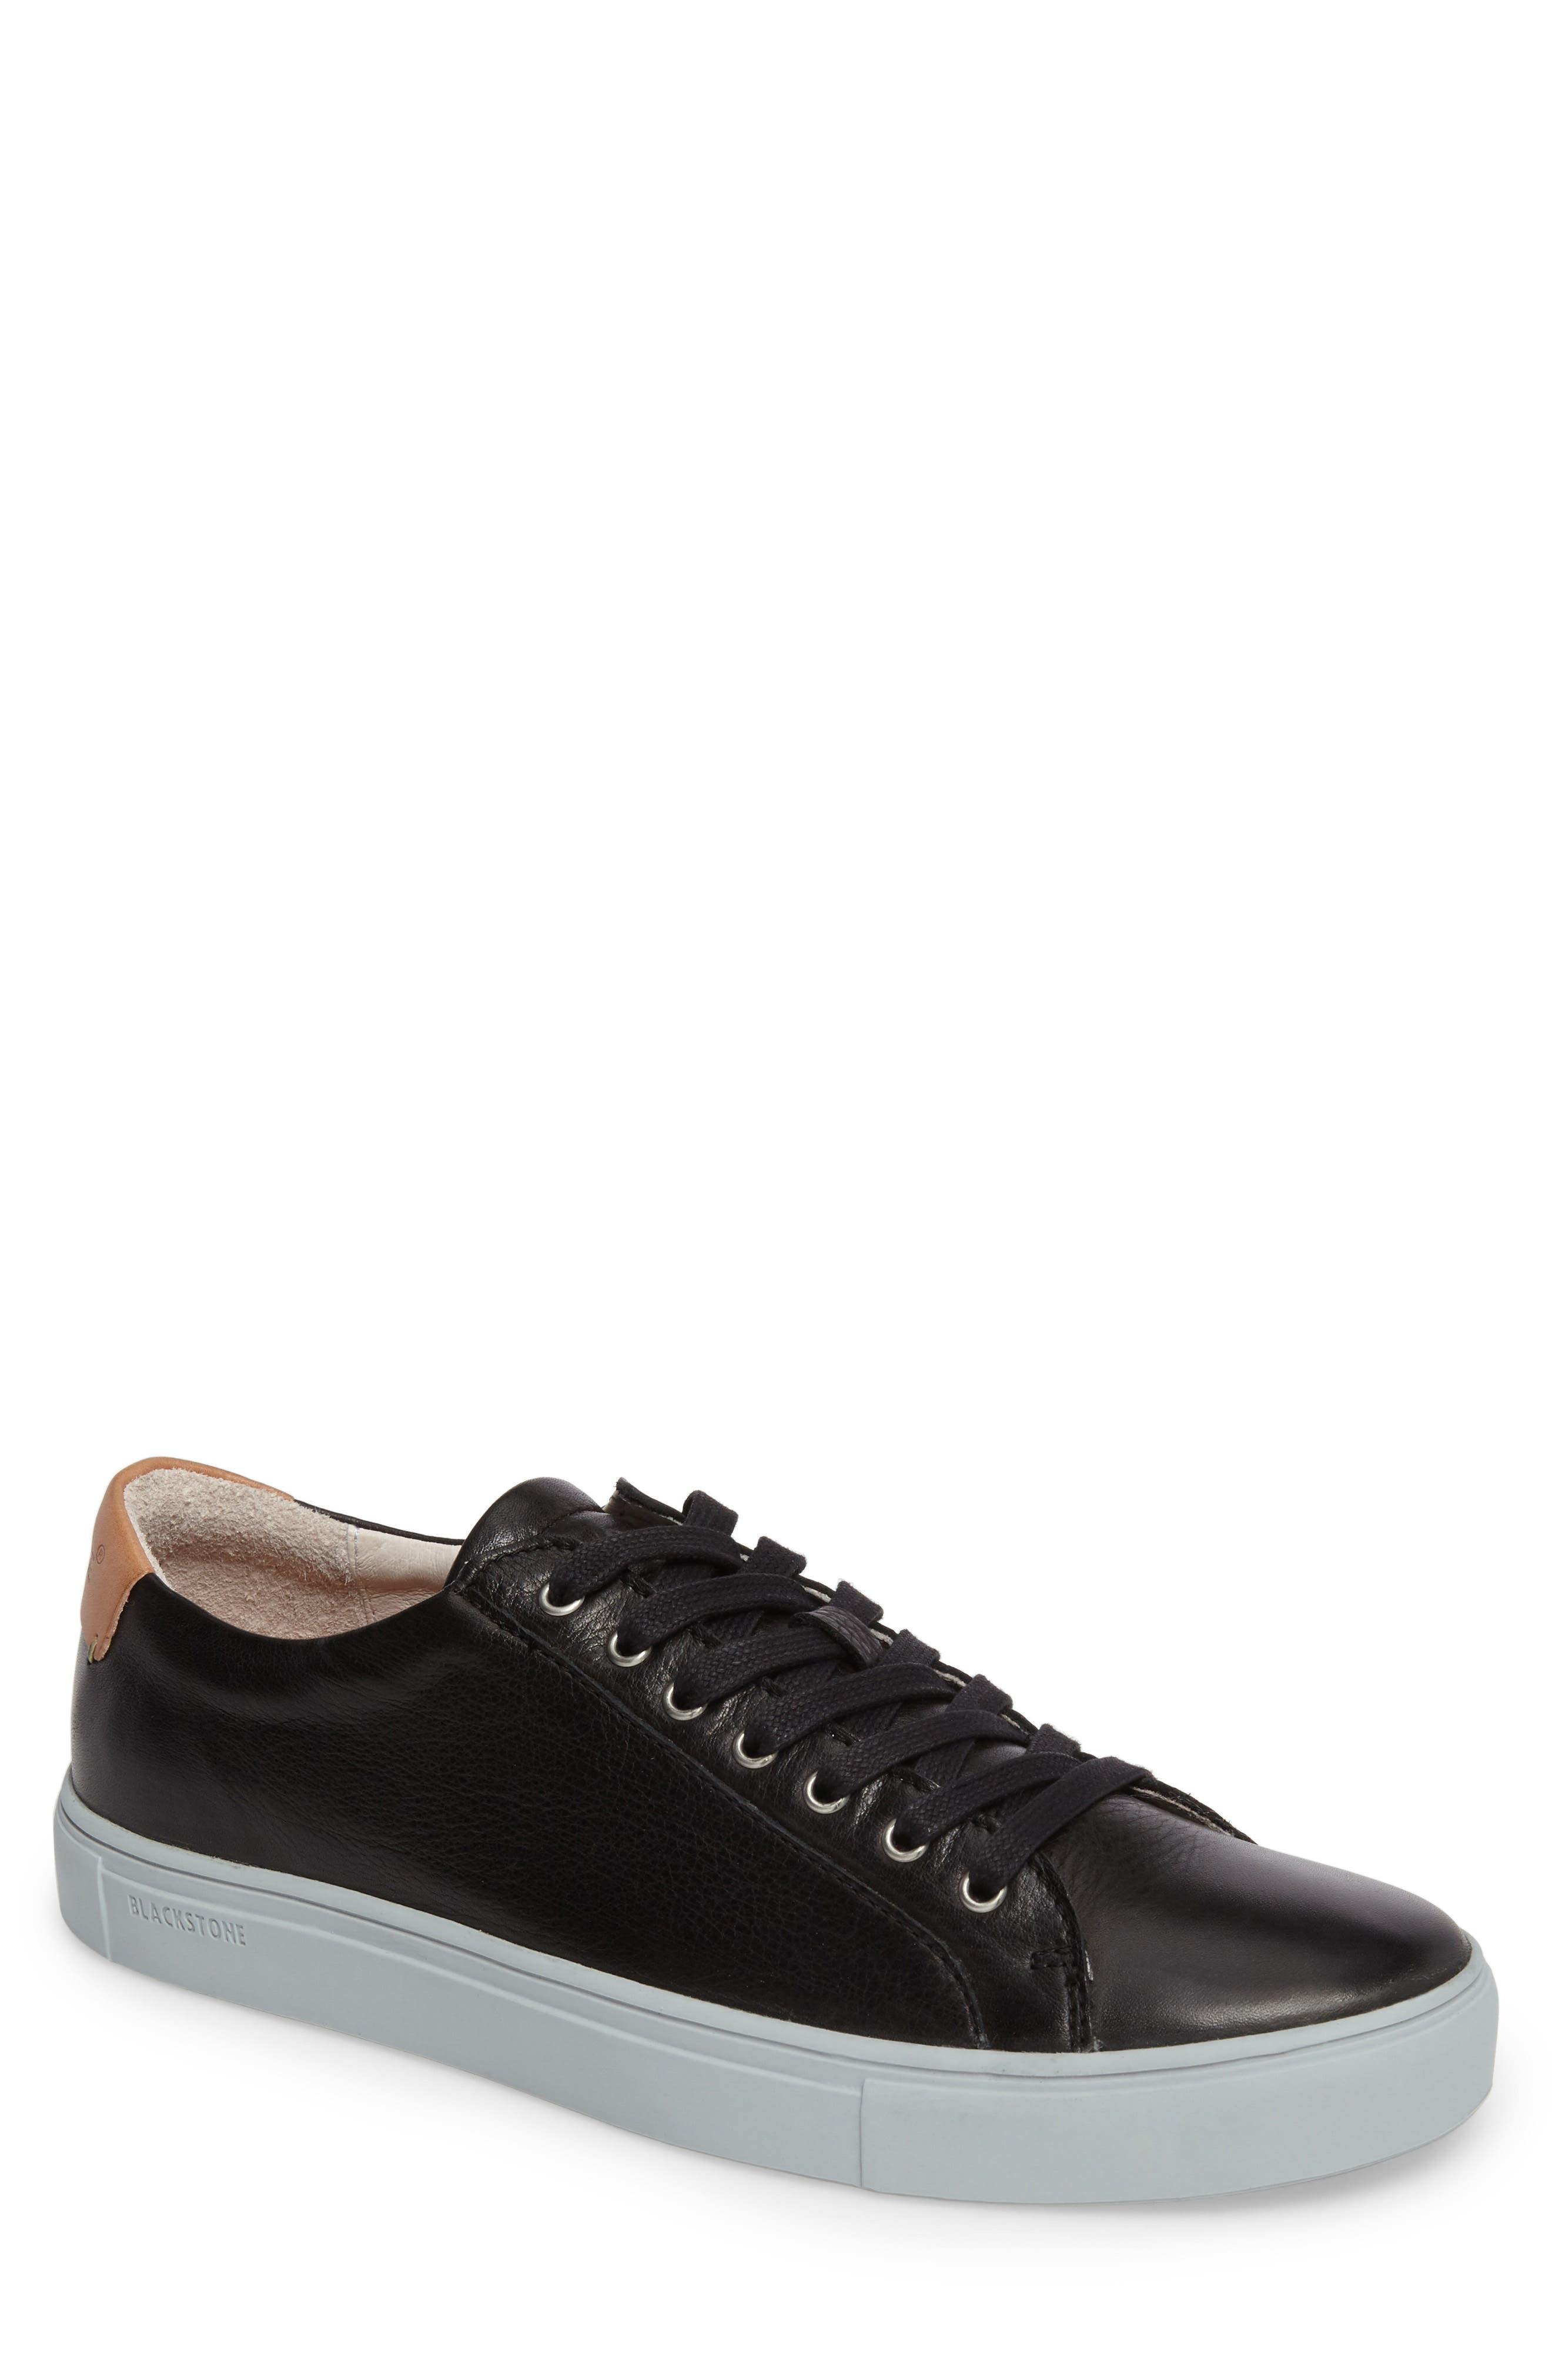 NM01 7 Eyelet Sneaker,                         Main,                         color, BLACK LEATHER